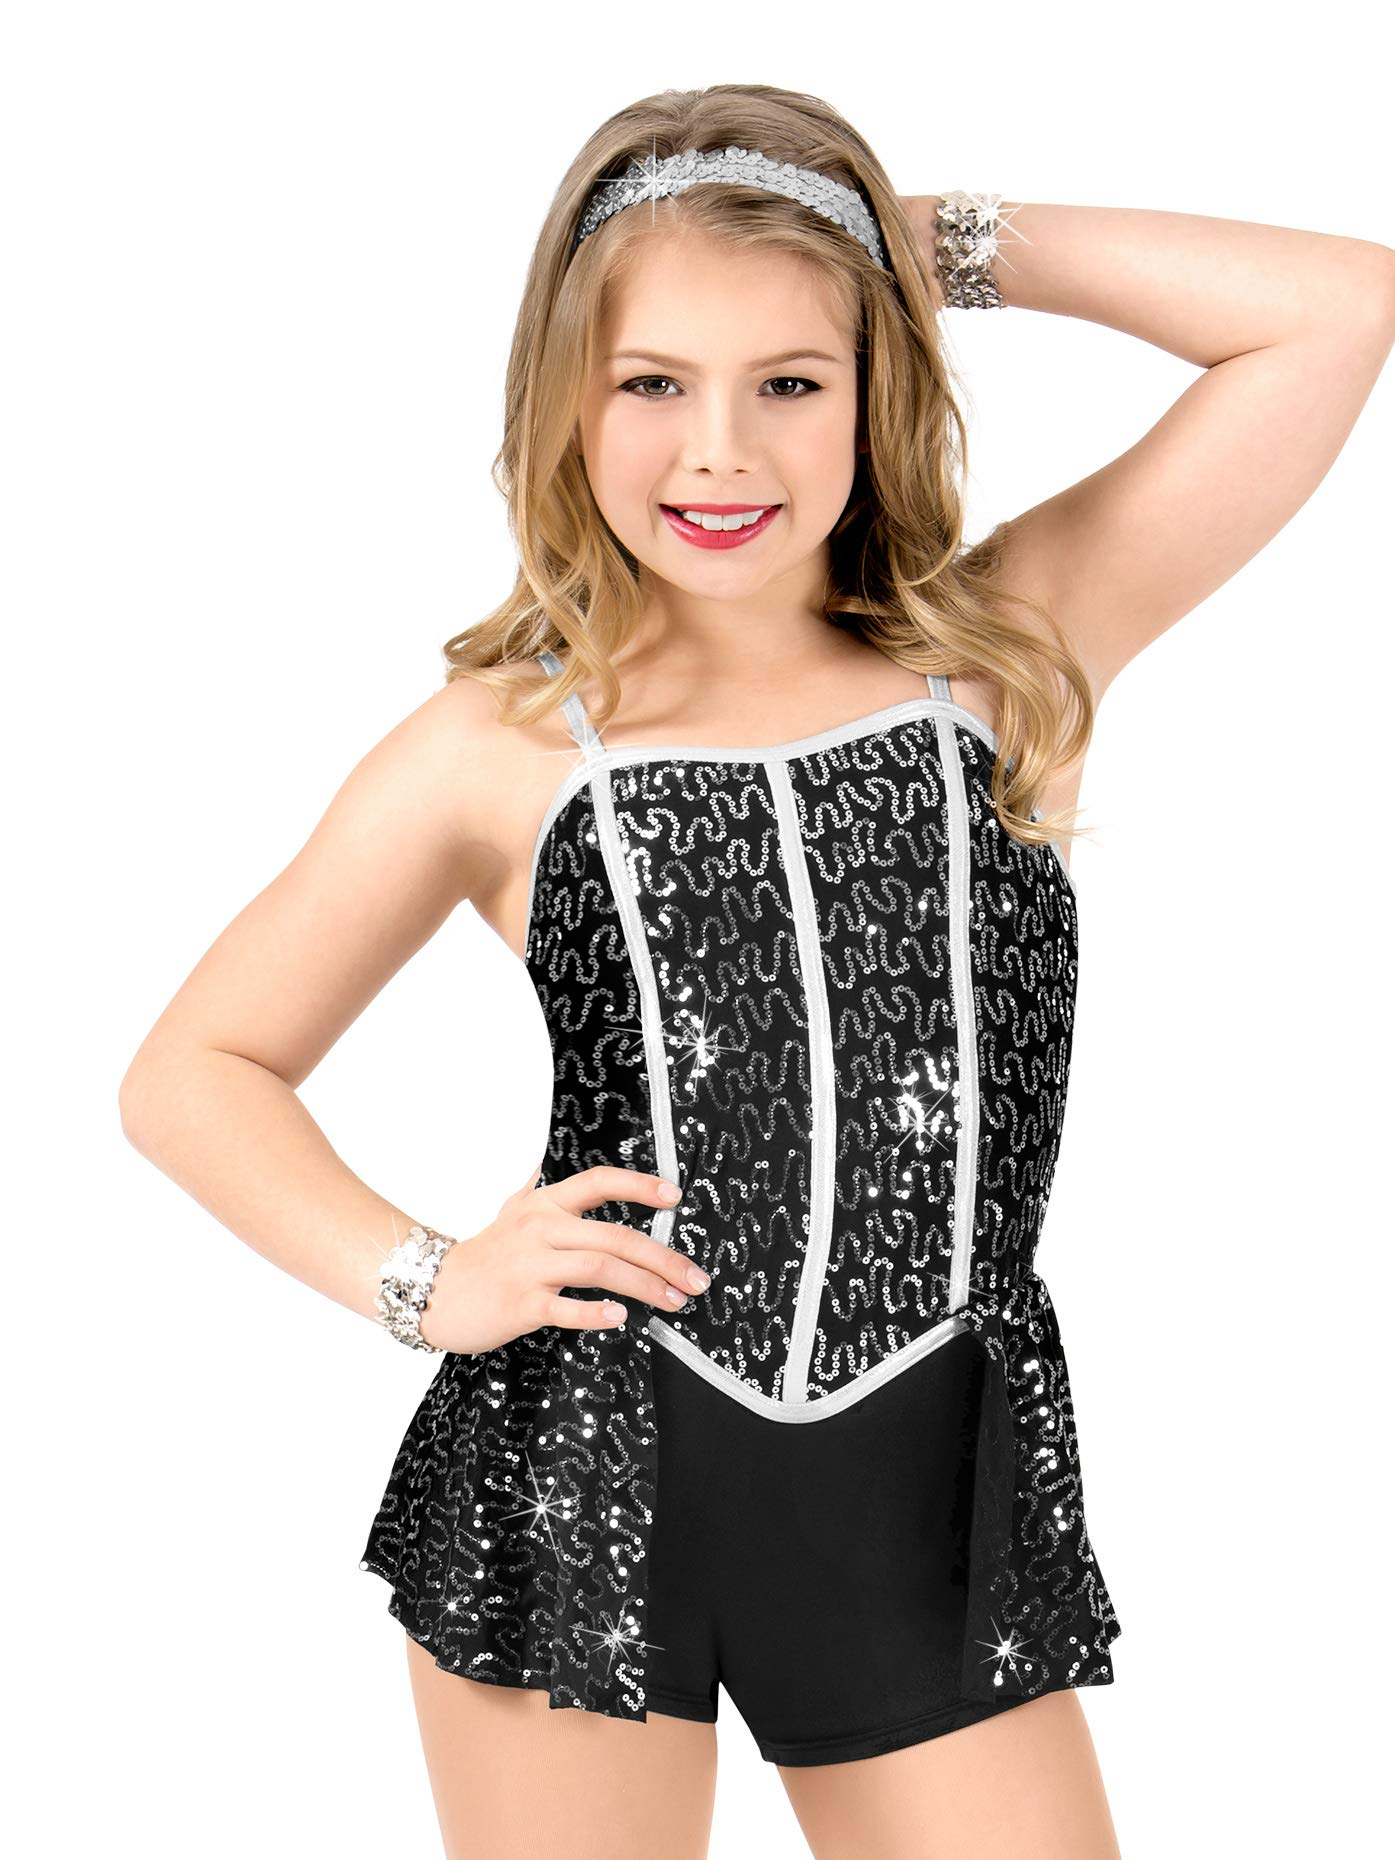 Girls Sequin Camisole Performance Shorty Unitard N7499CBURI Burgundy Intermediate by Elisse by Double Platinum